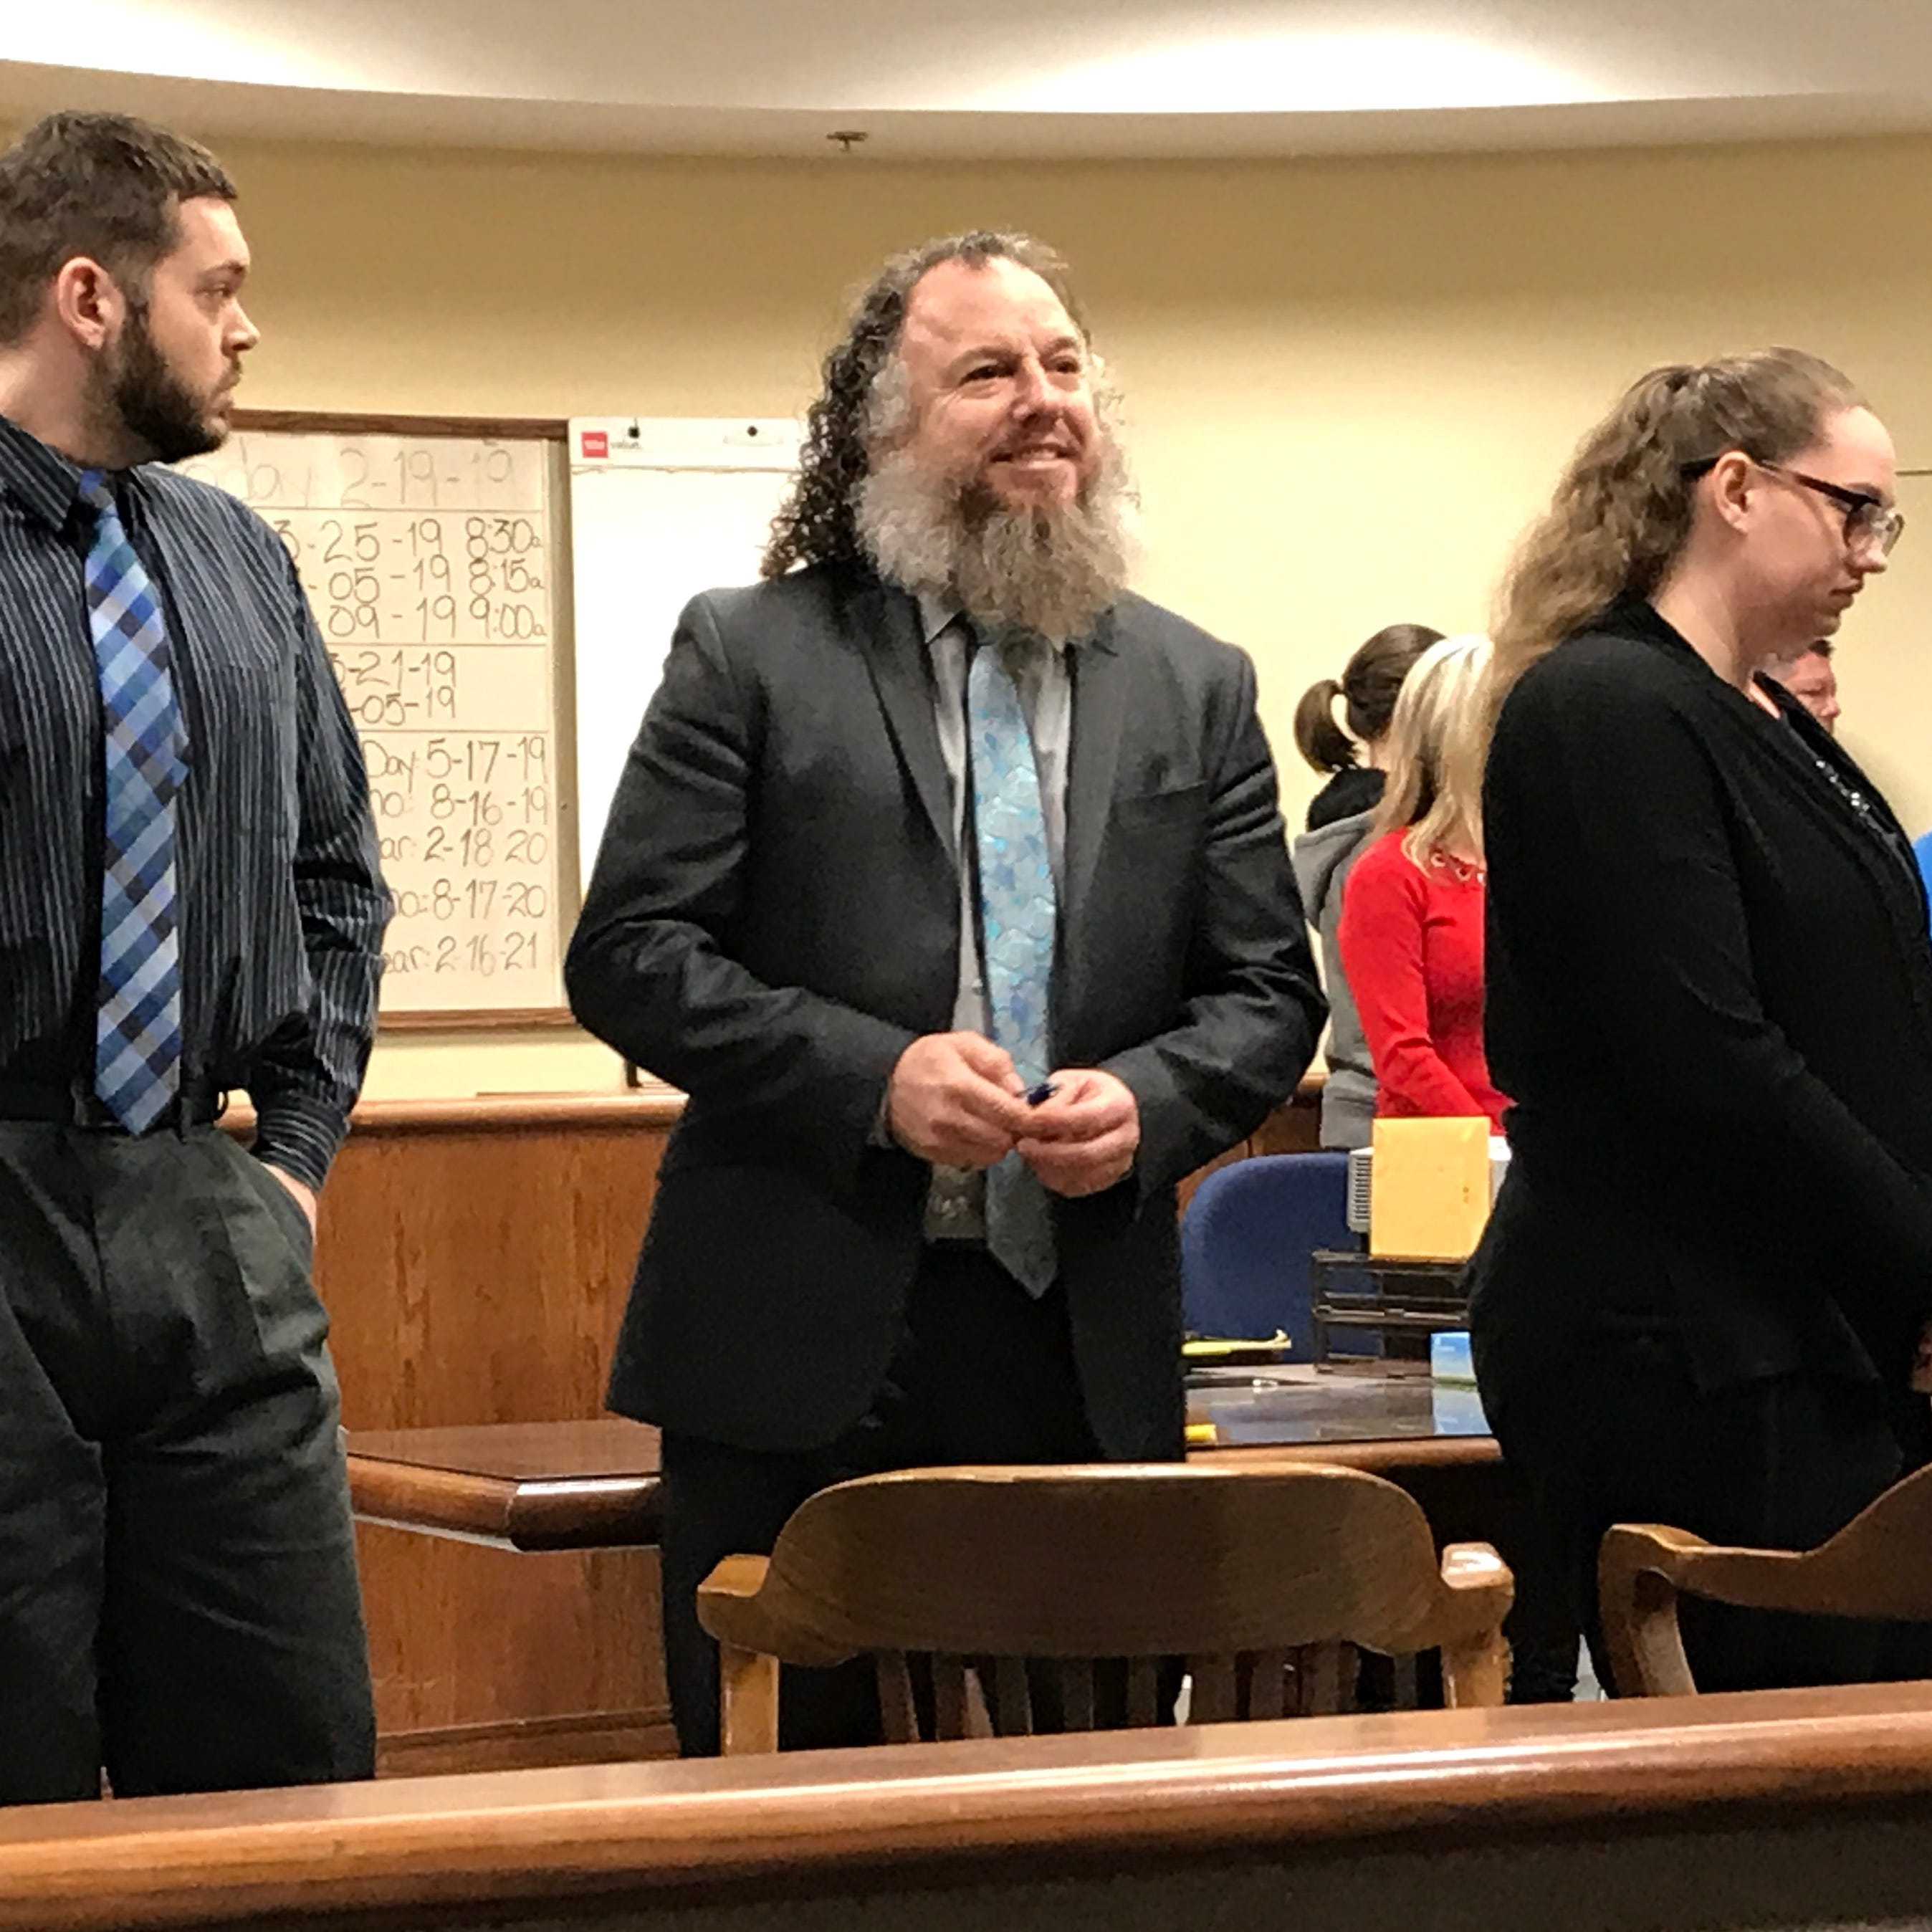 Anderson parents found guilty in death of their 3-month-old baby